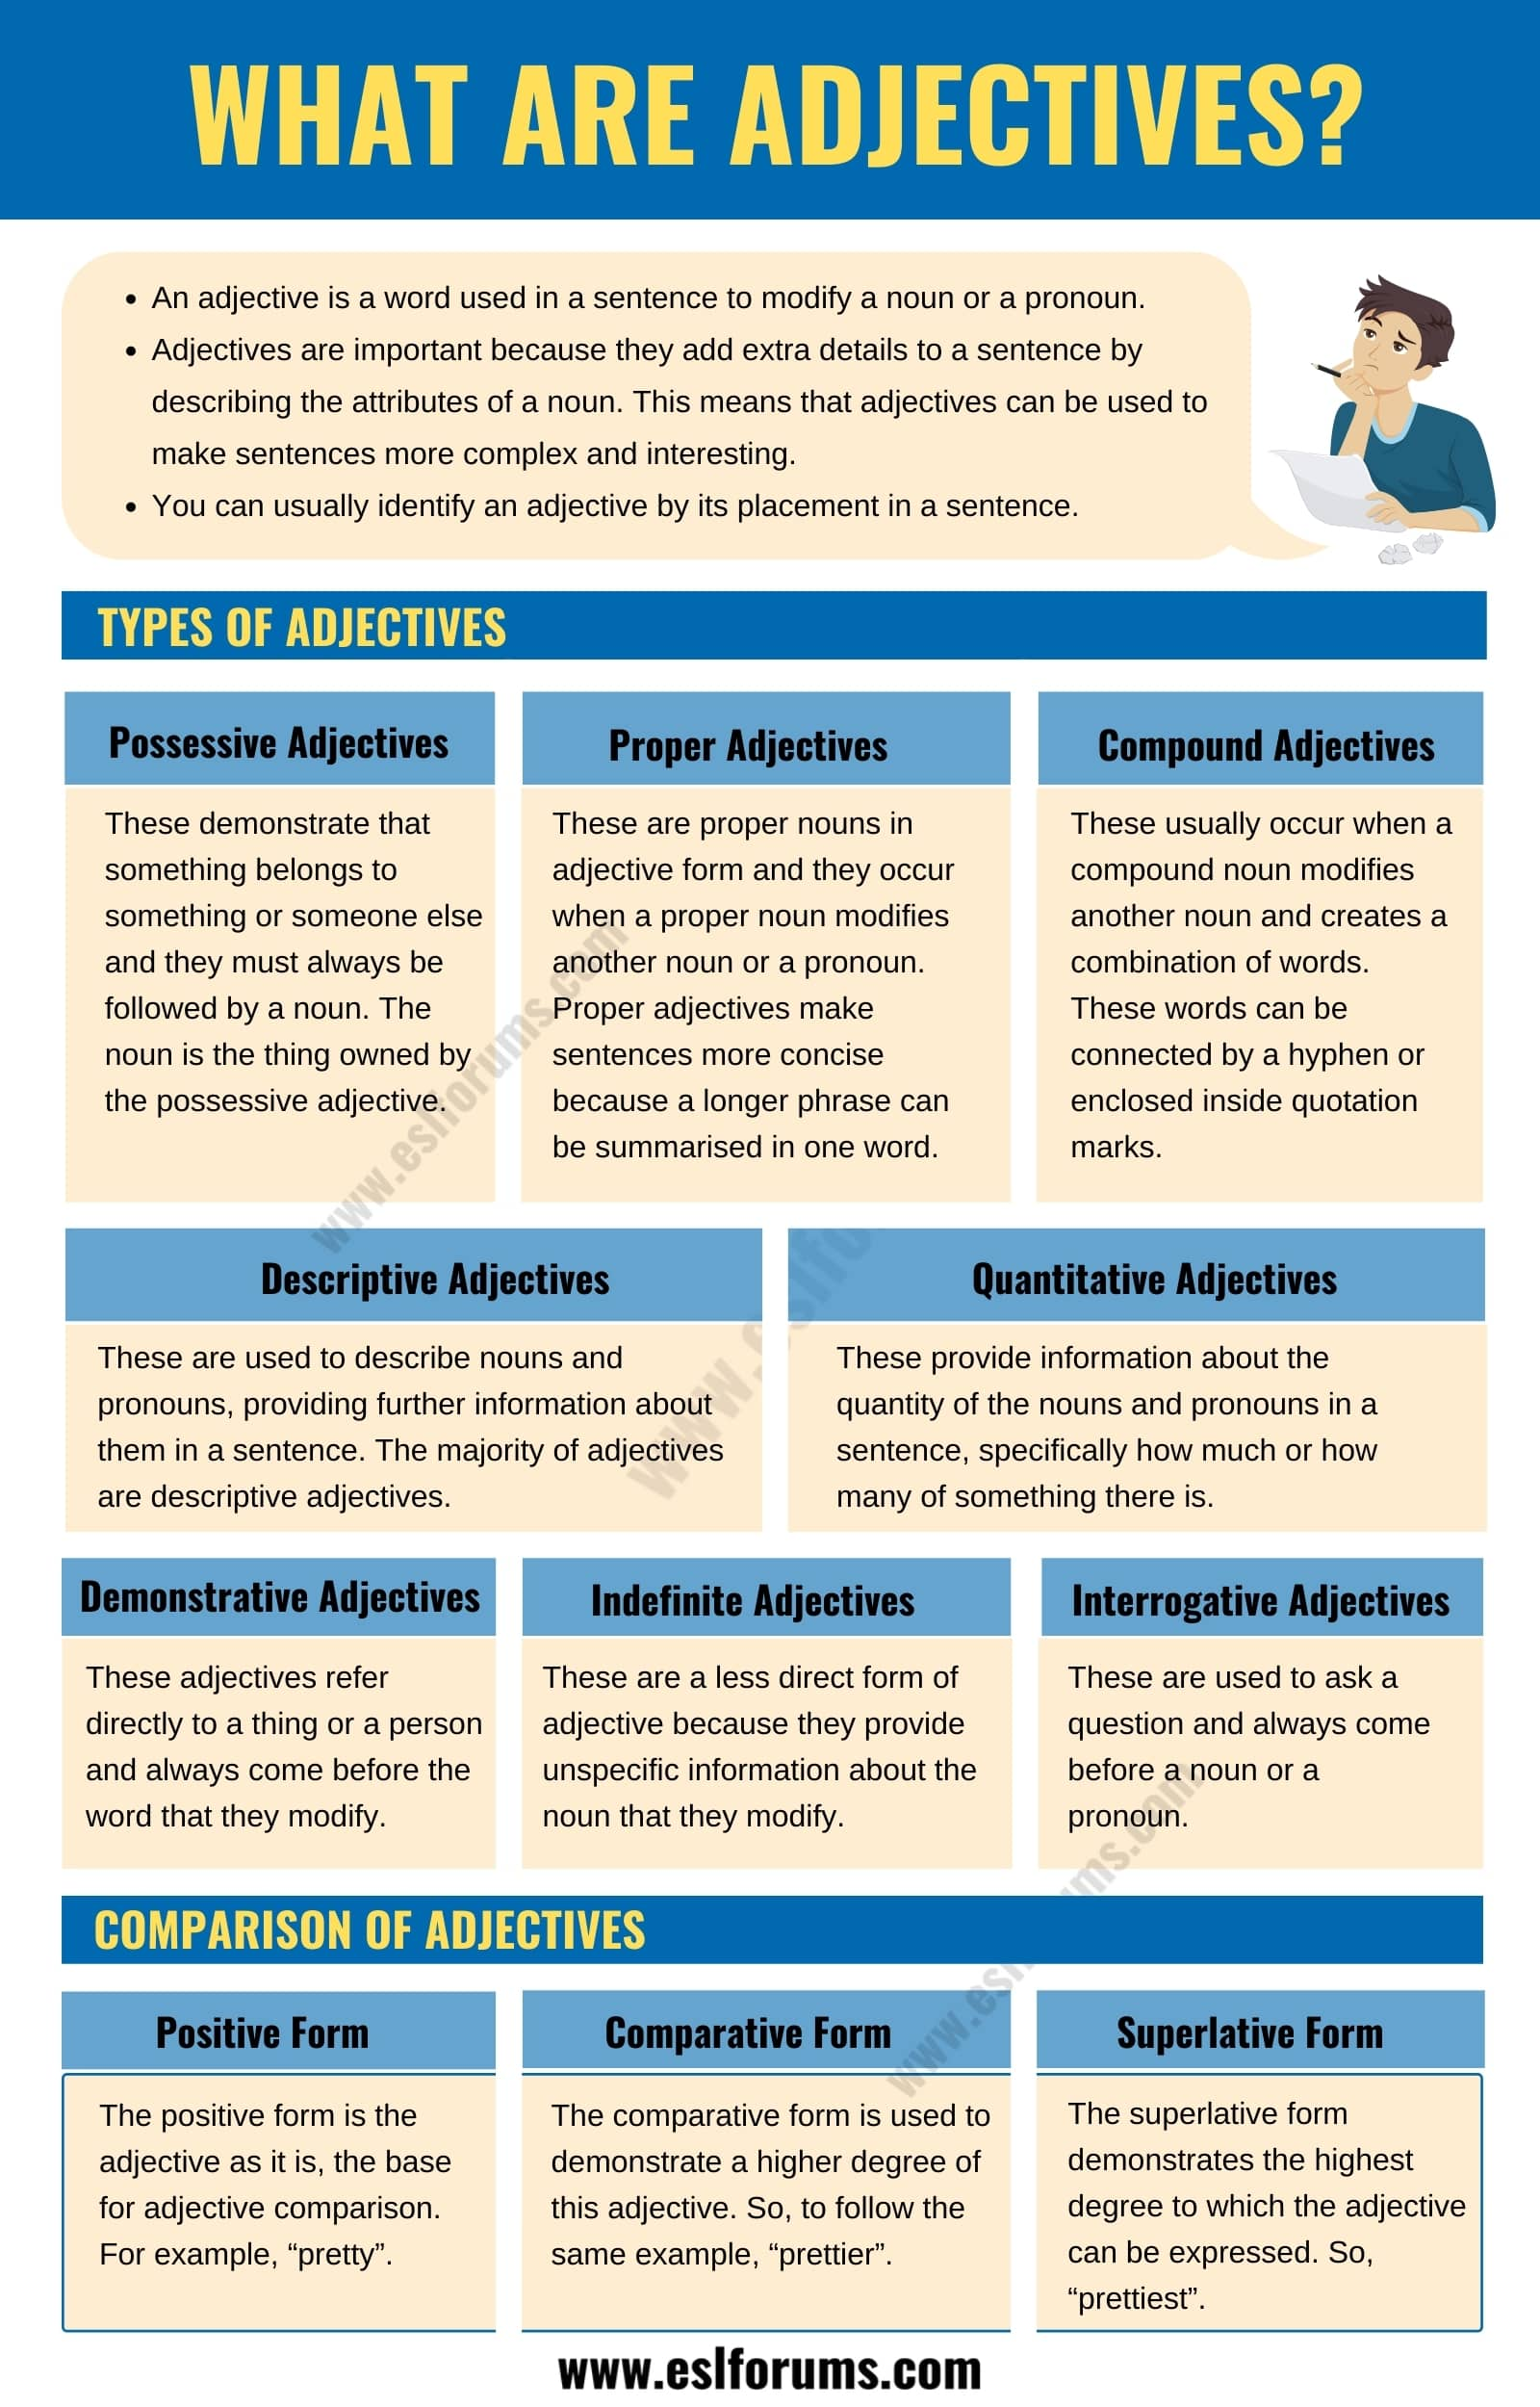 Adjectives | Rules, Types and Useful Usage in Comparison